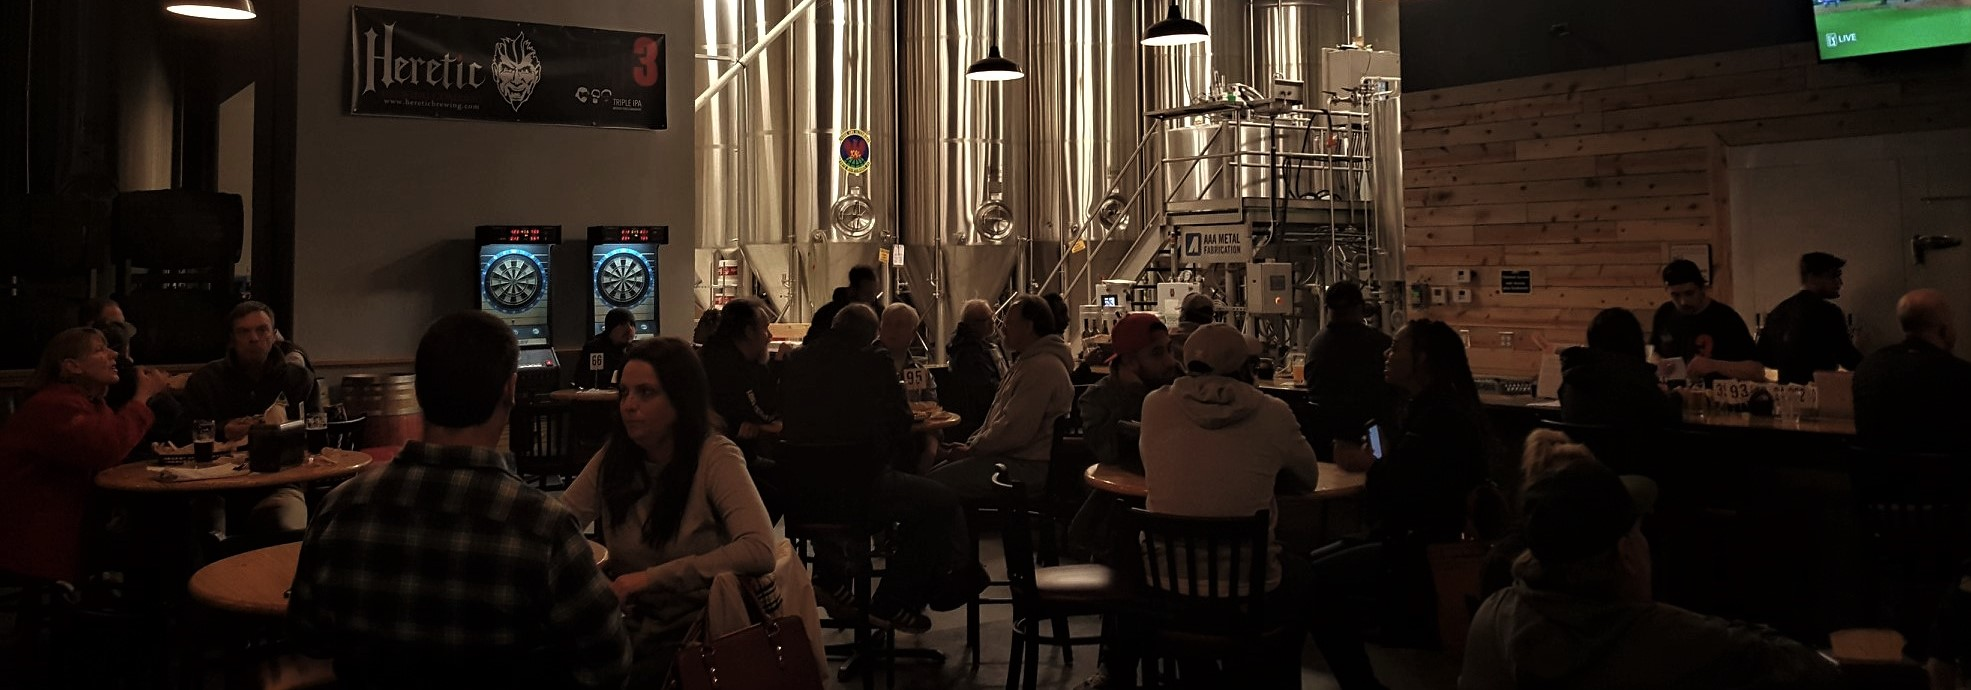 Inside taproom shot with people drinking at tables and view of tanks in the background